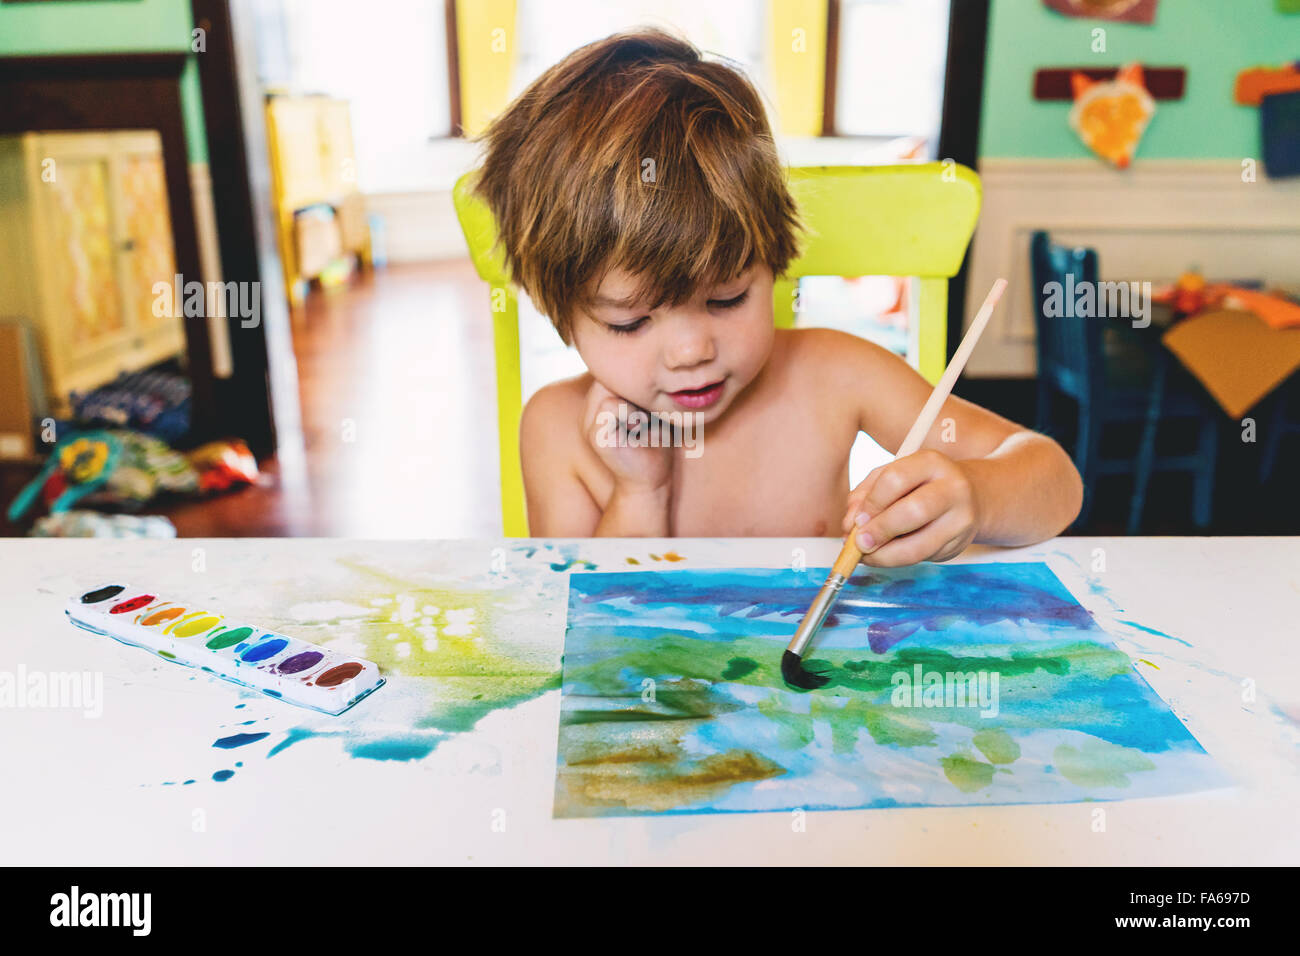 Boy painting with watercolors - Stock Image